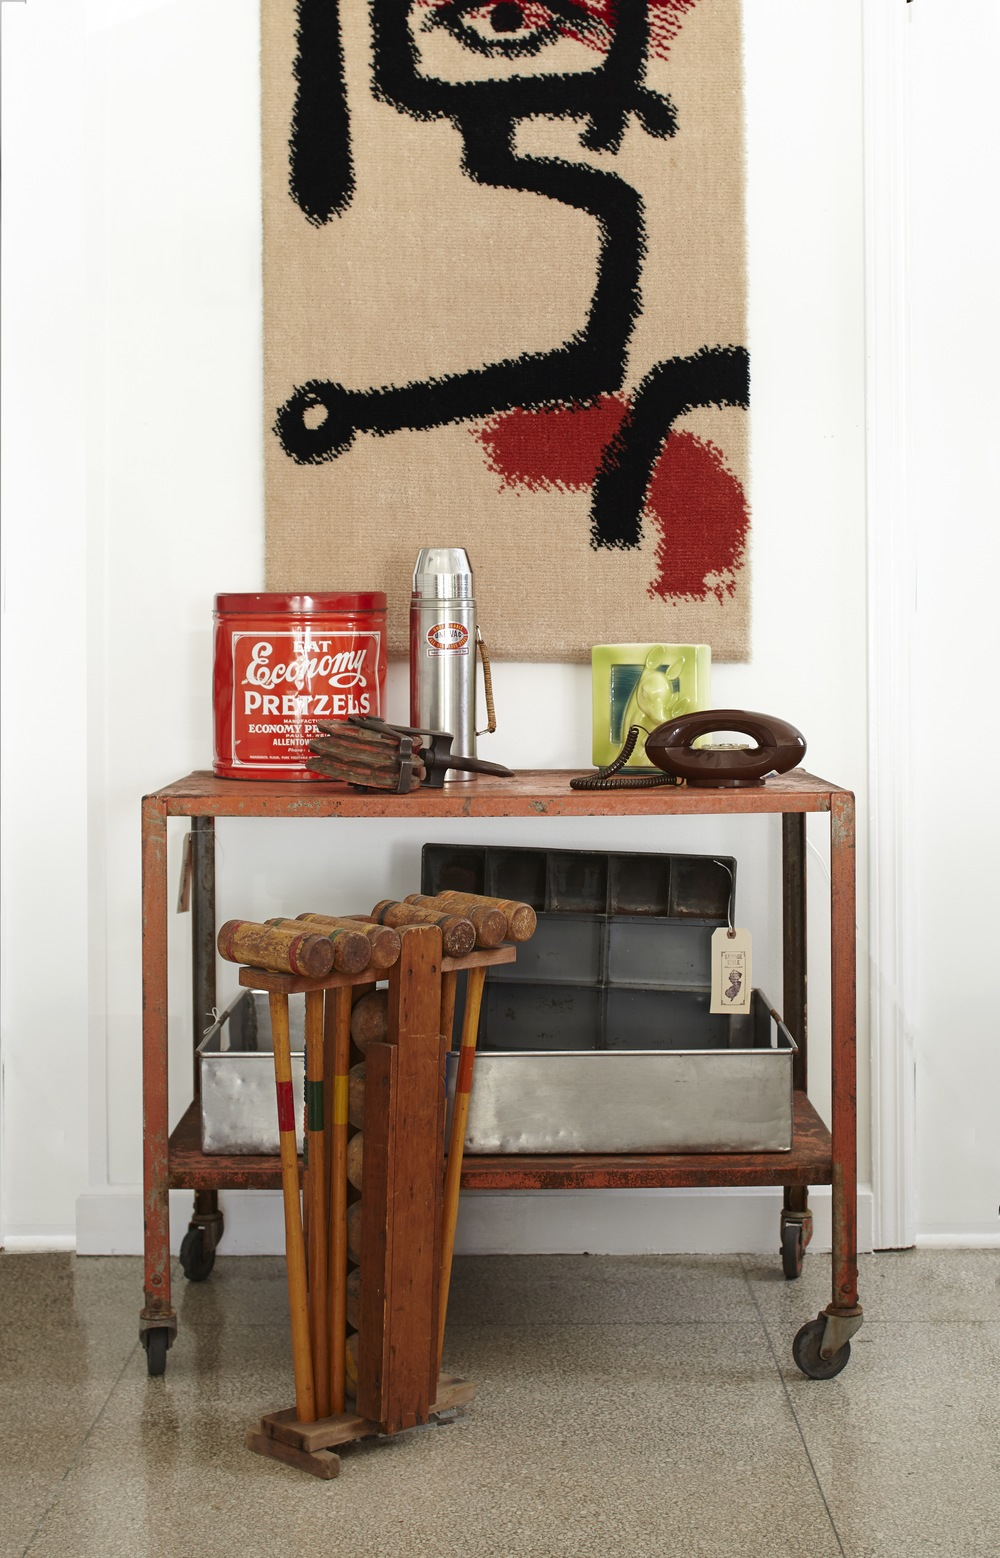 A Salvage Style Vignette Featuring Industrial Salvage, Utilitarian Objects,  And Midcentury Art.